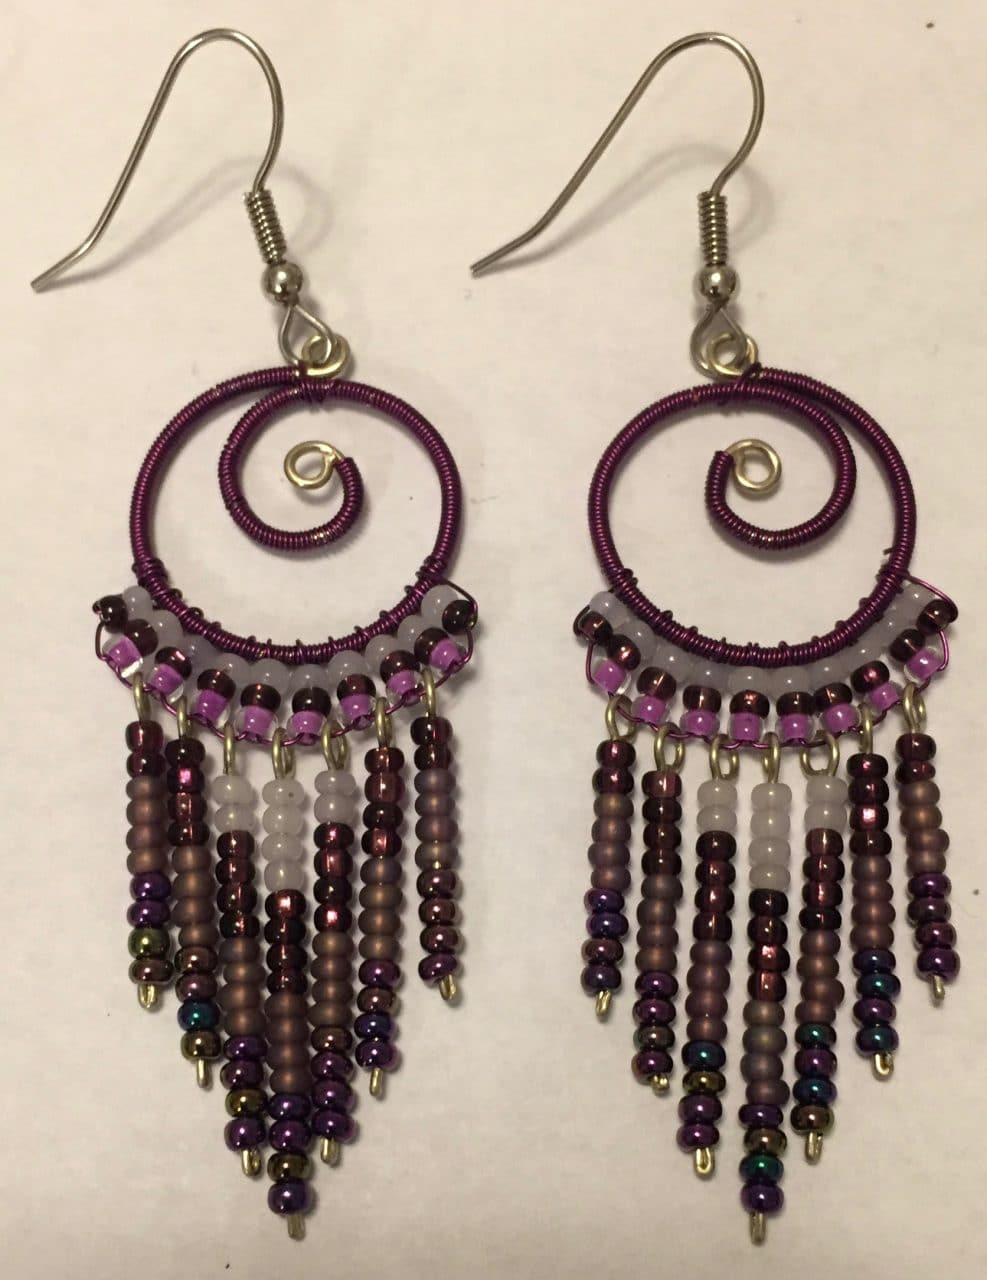 Spiral Fringe Earrings - Purples